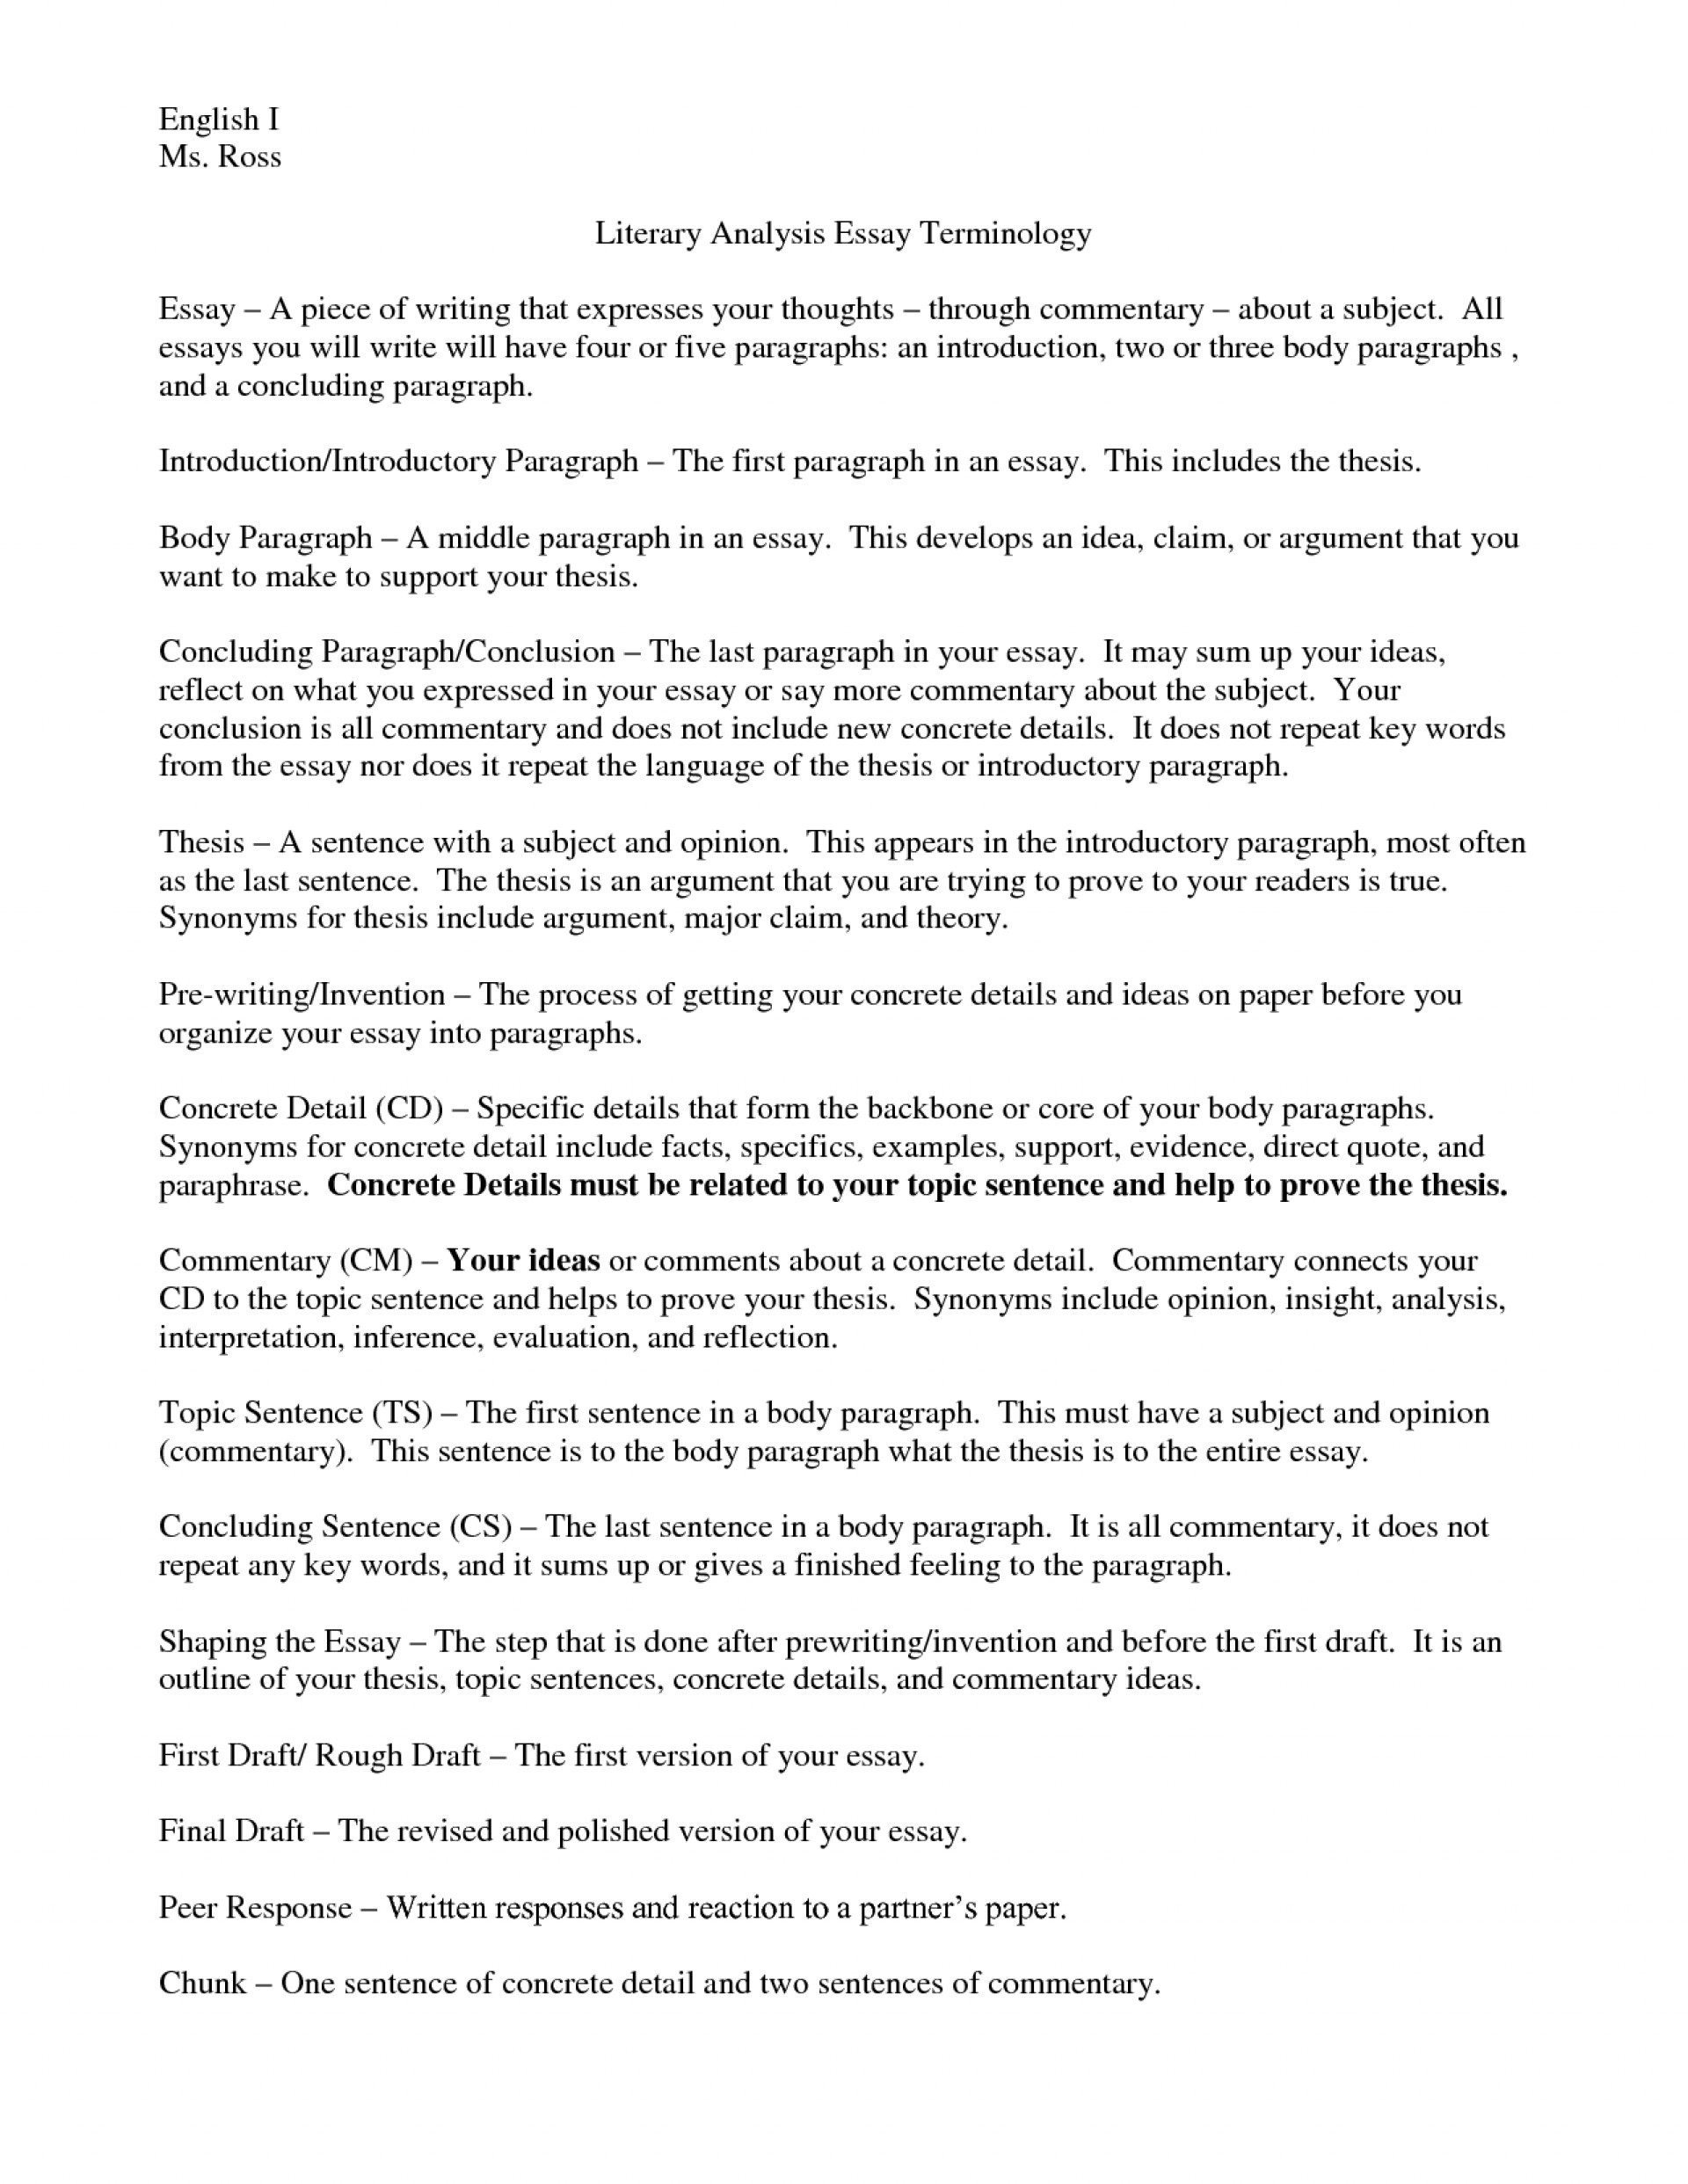 Science Essay Example  How To Write A Good Proposal Essay also Example Proposal Essay Writing An Introduction For A Literary Analysis Essay  Sample Essay For High School Students